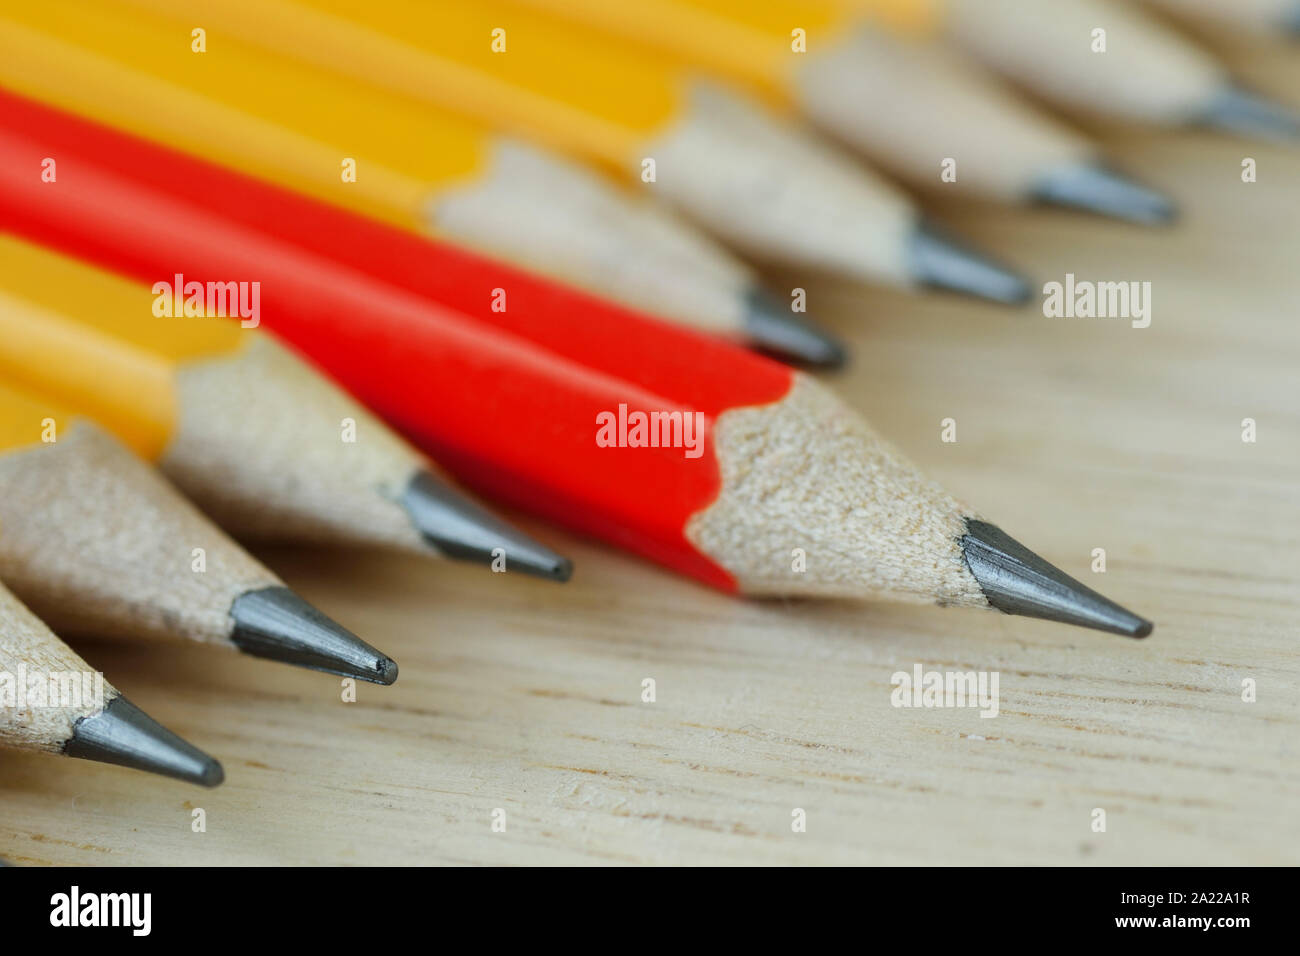 Red pencil standing out from croud of yellow pencils - Think different and leadership concept Stock Photo